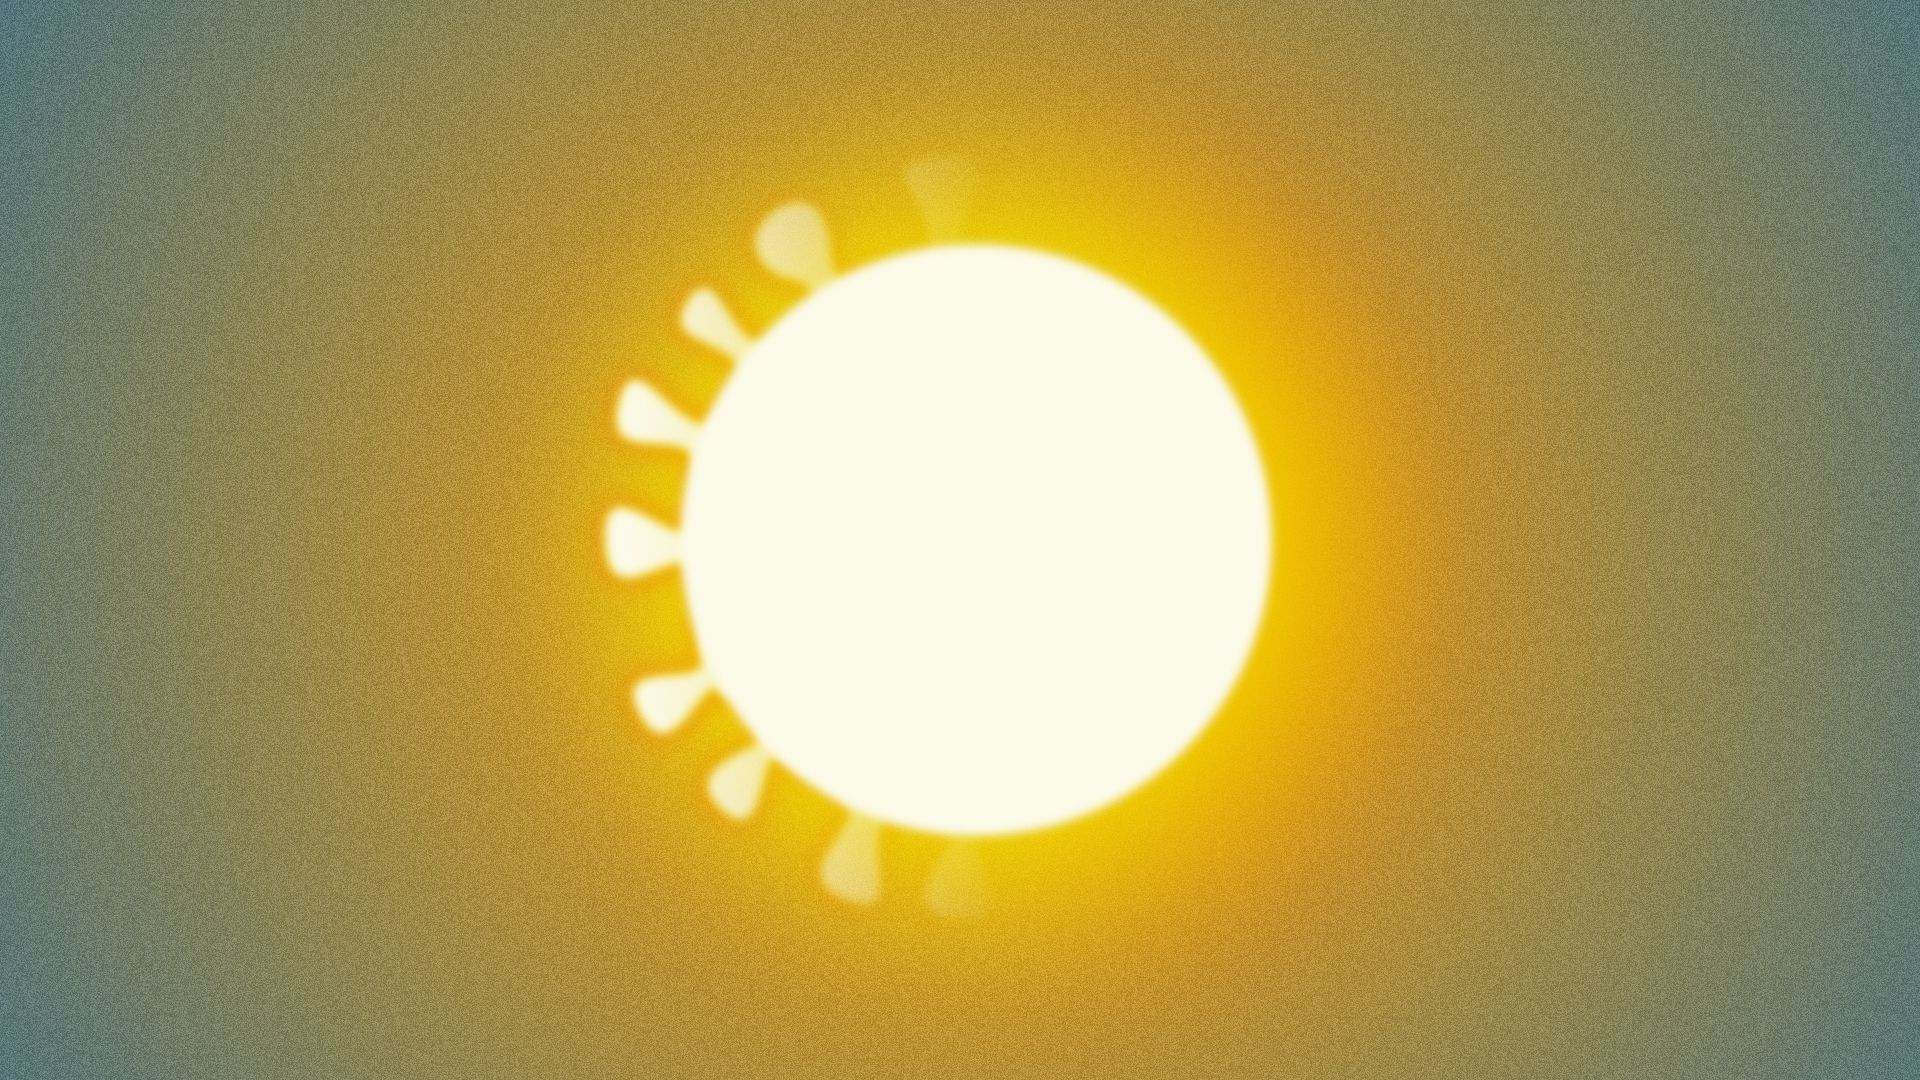 Illustration of the sun, encircled with coronavirus protrusions that are fading from left to right.